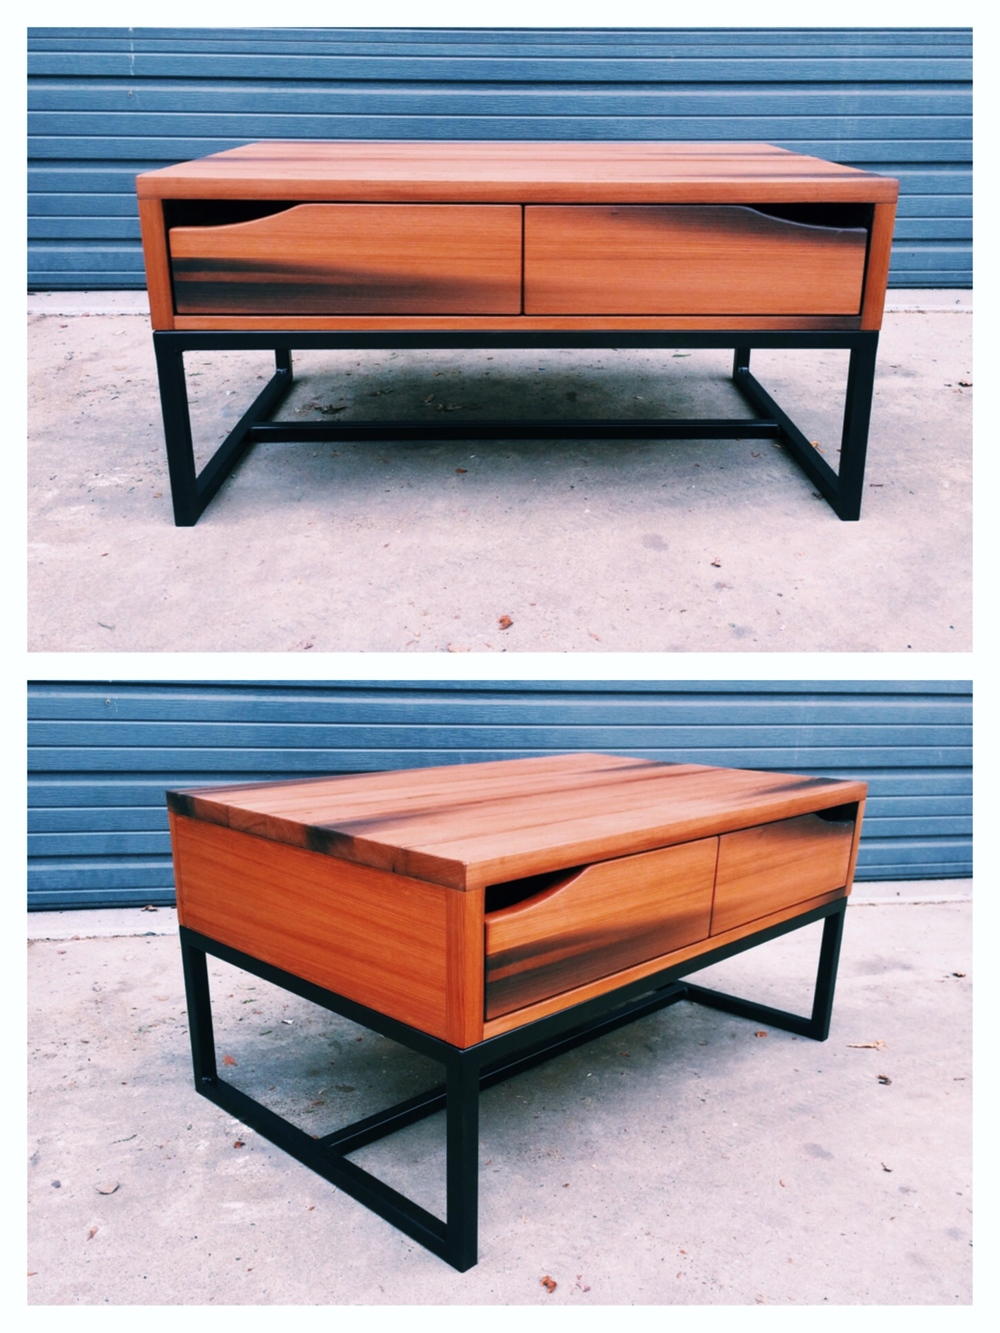 Christ Patton table drawers.JPG